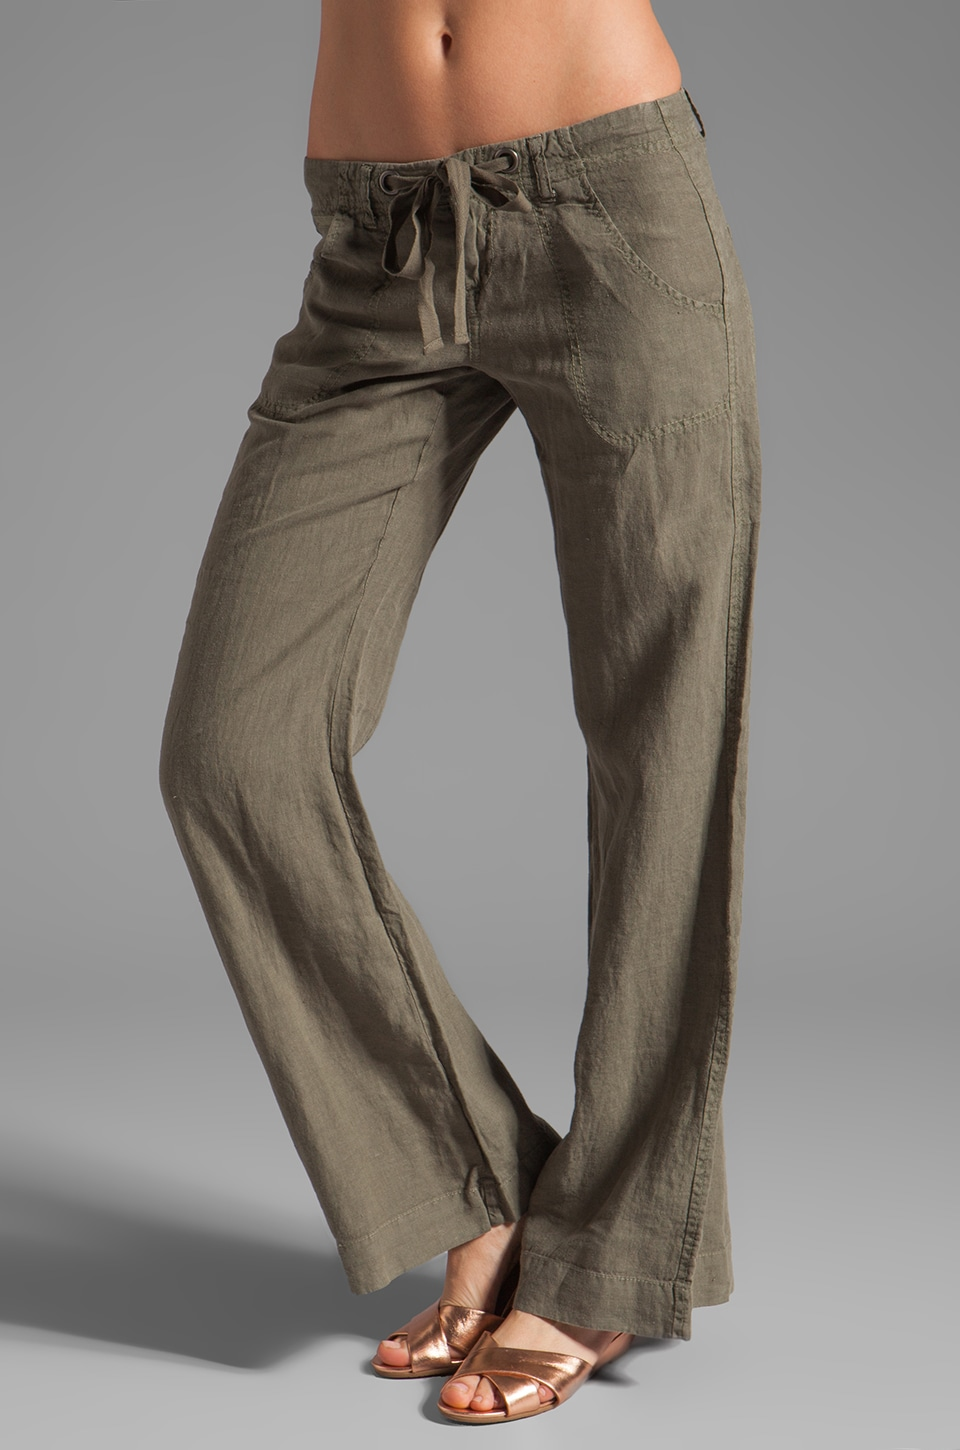 Joie Irreplaceable Linen Pant in New Army